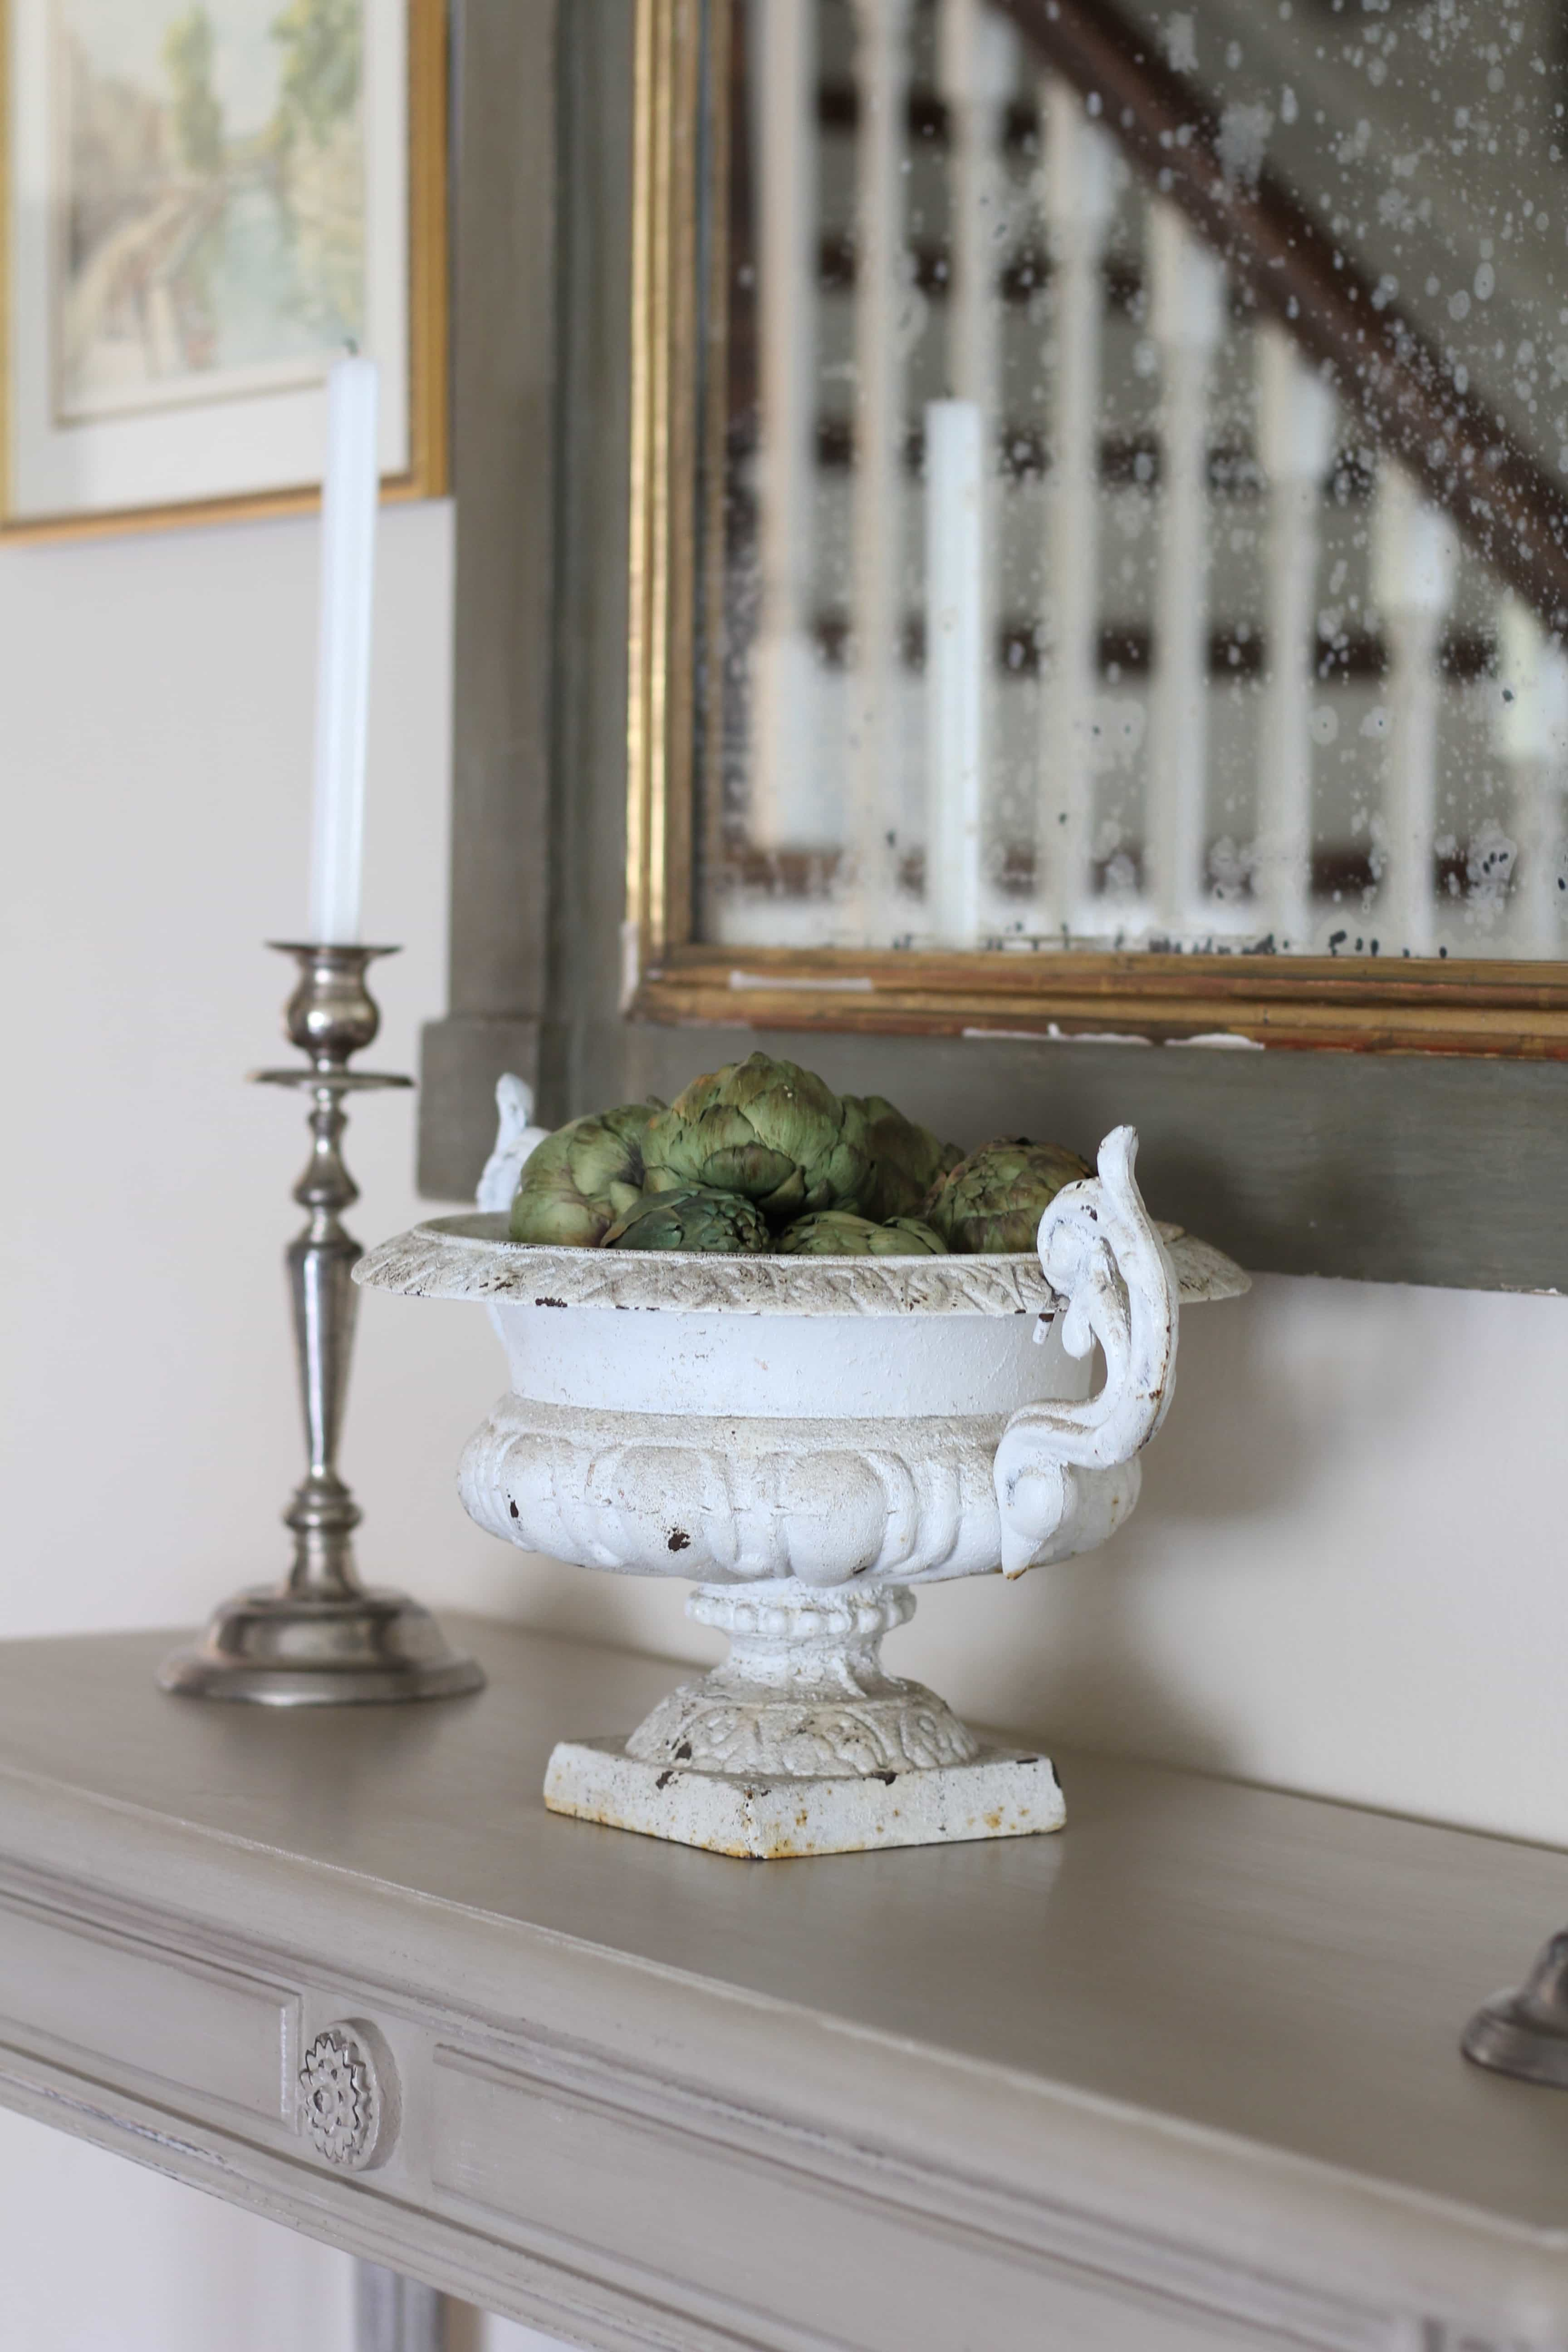 antique-urn-artichokes-spring-decor